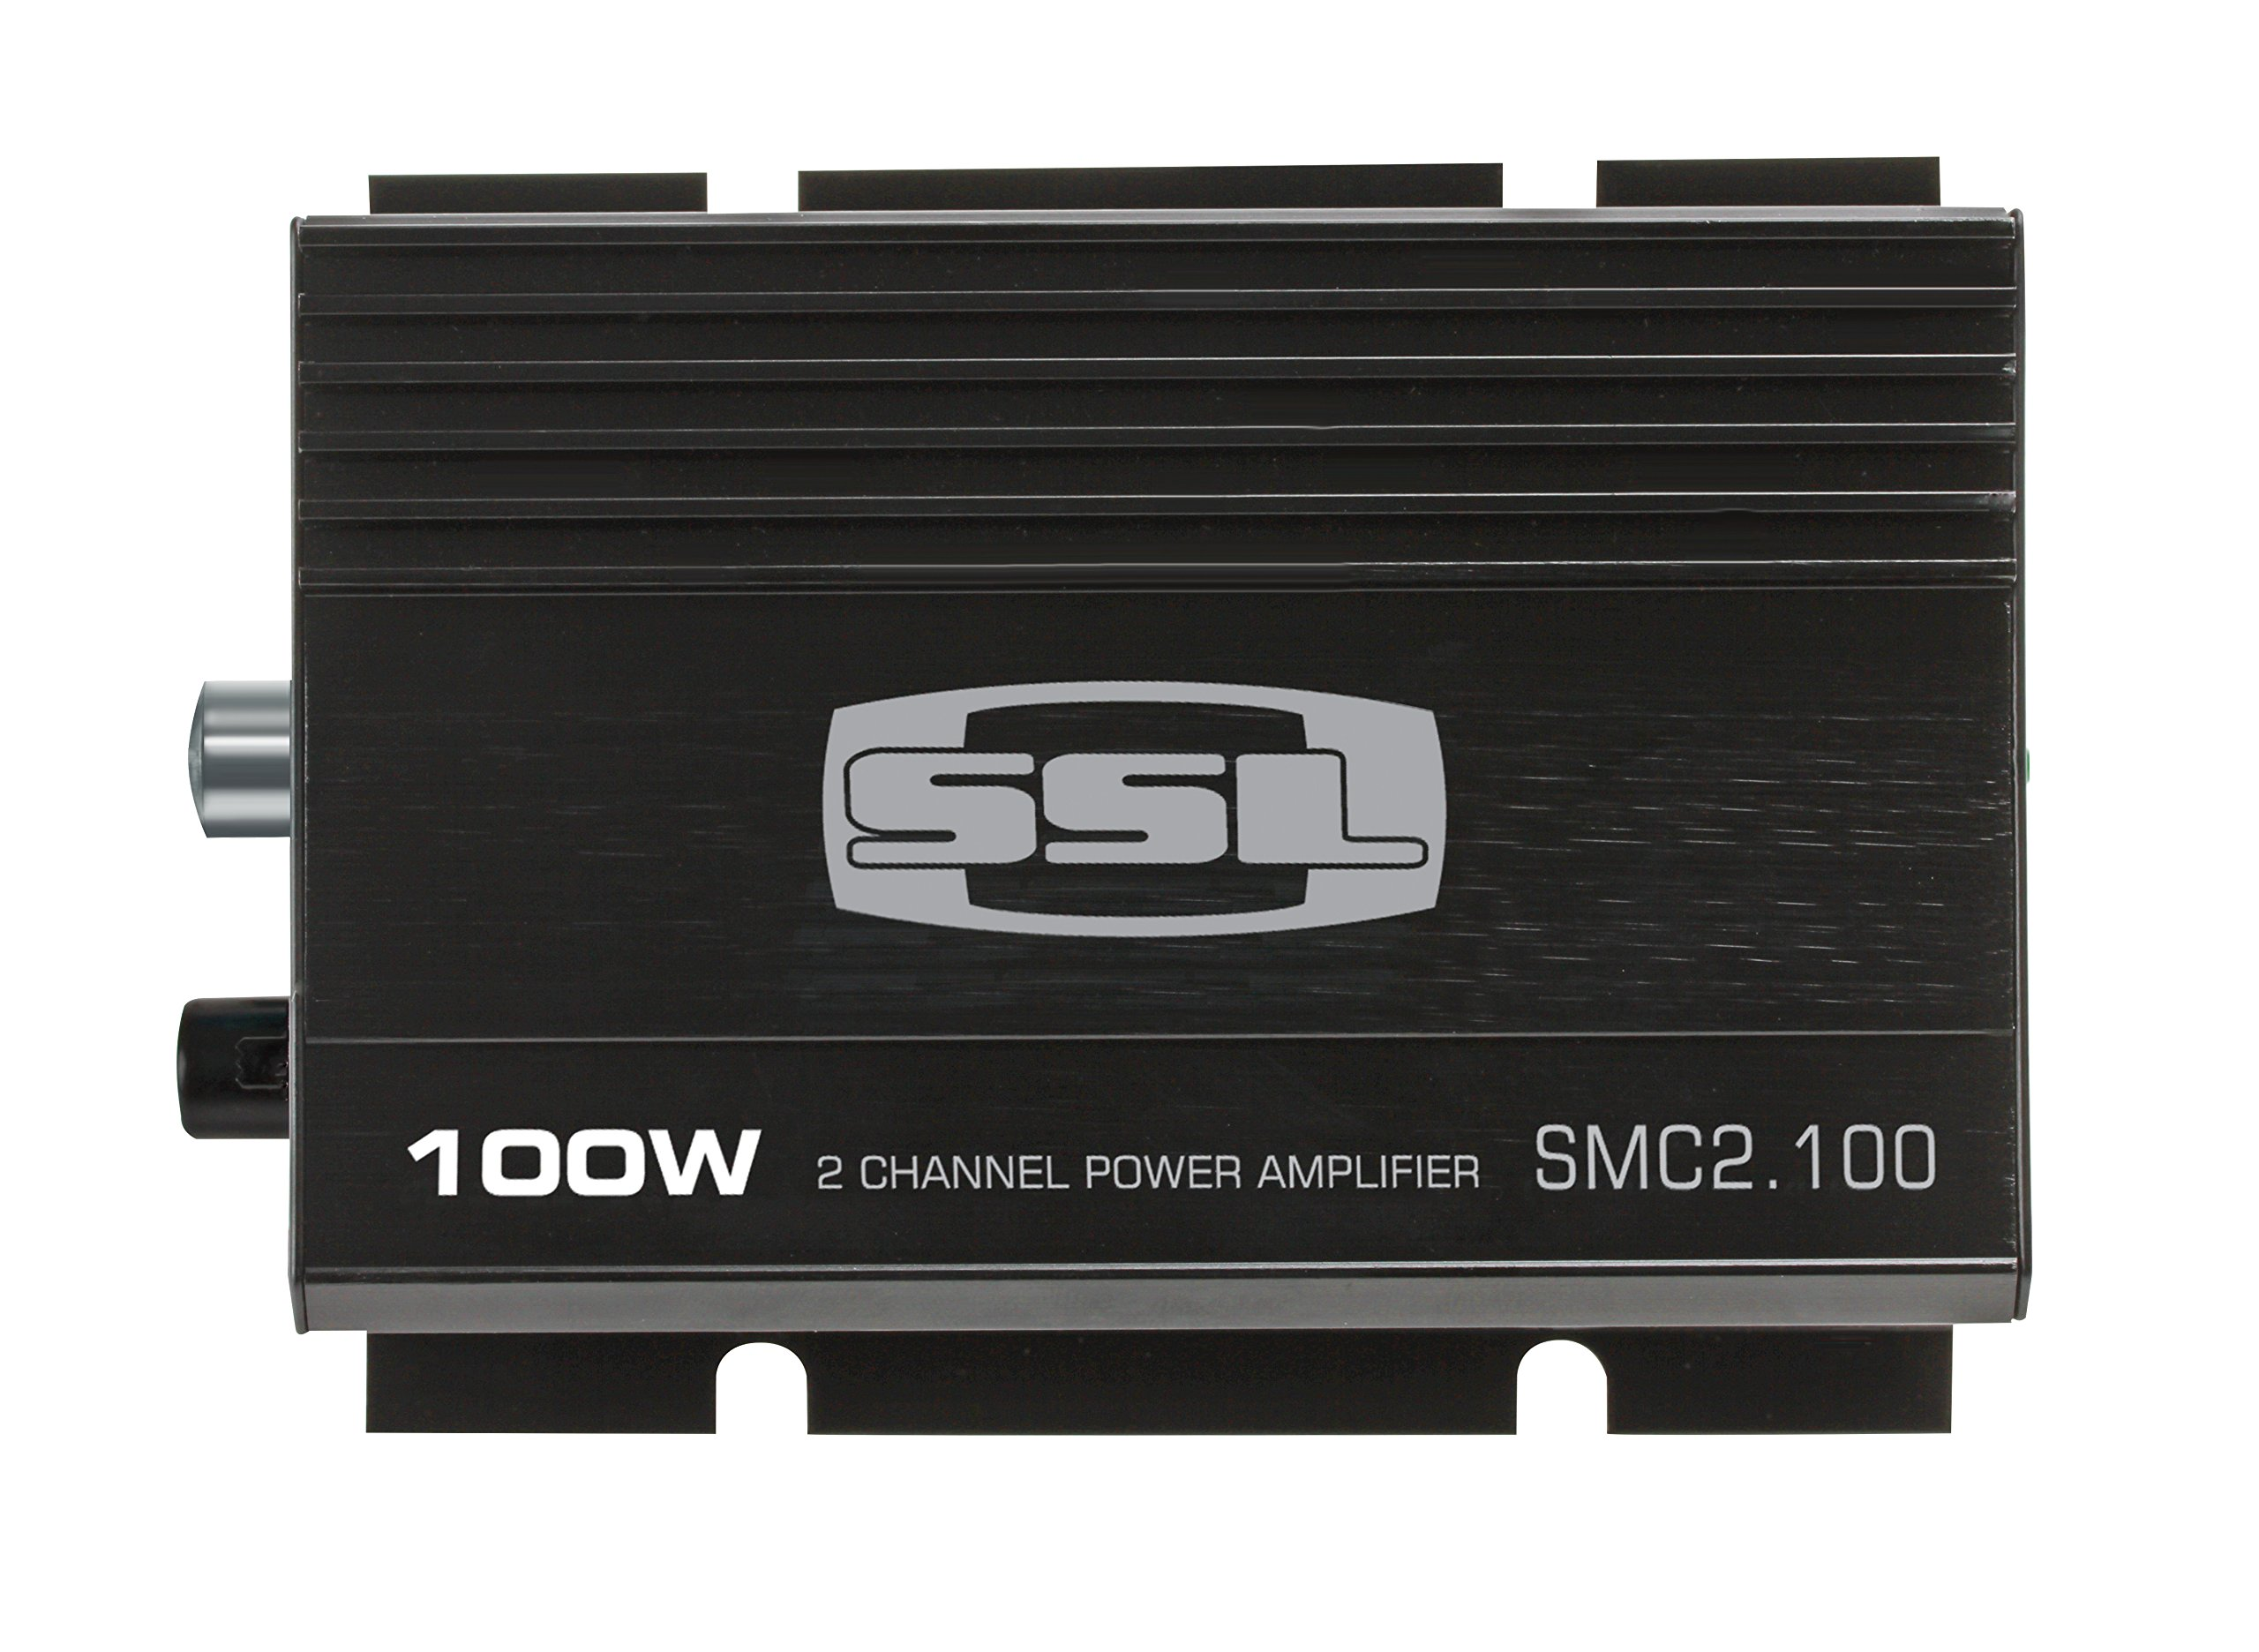 Sound Storm SMC2.100 - 100 Watt, 2 Channel, 4 to 8 Ohm Stable Class A/B, Full Range Car Amplifier